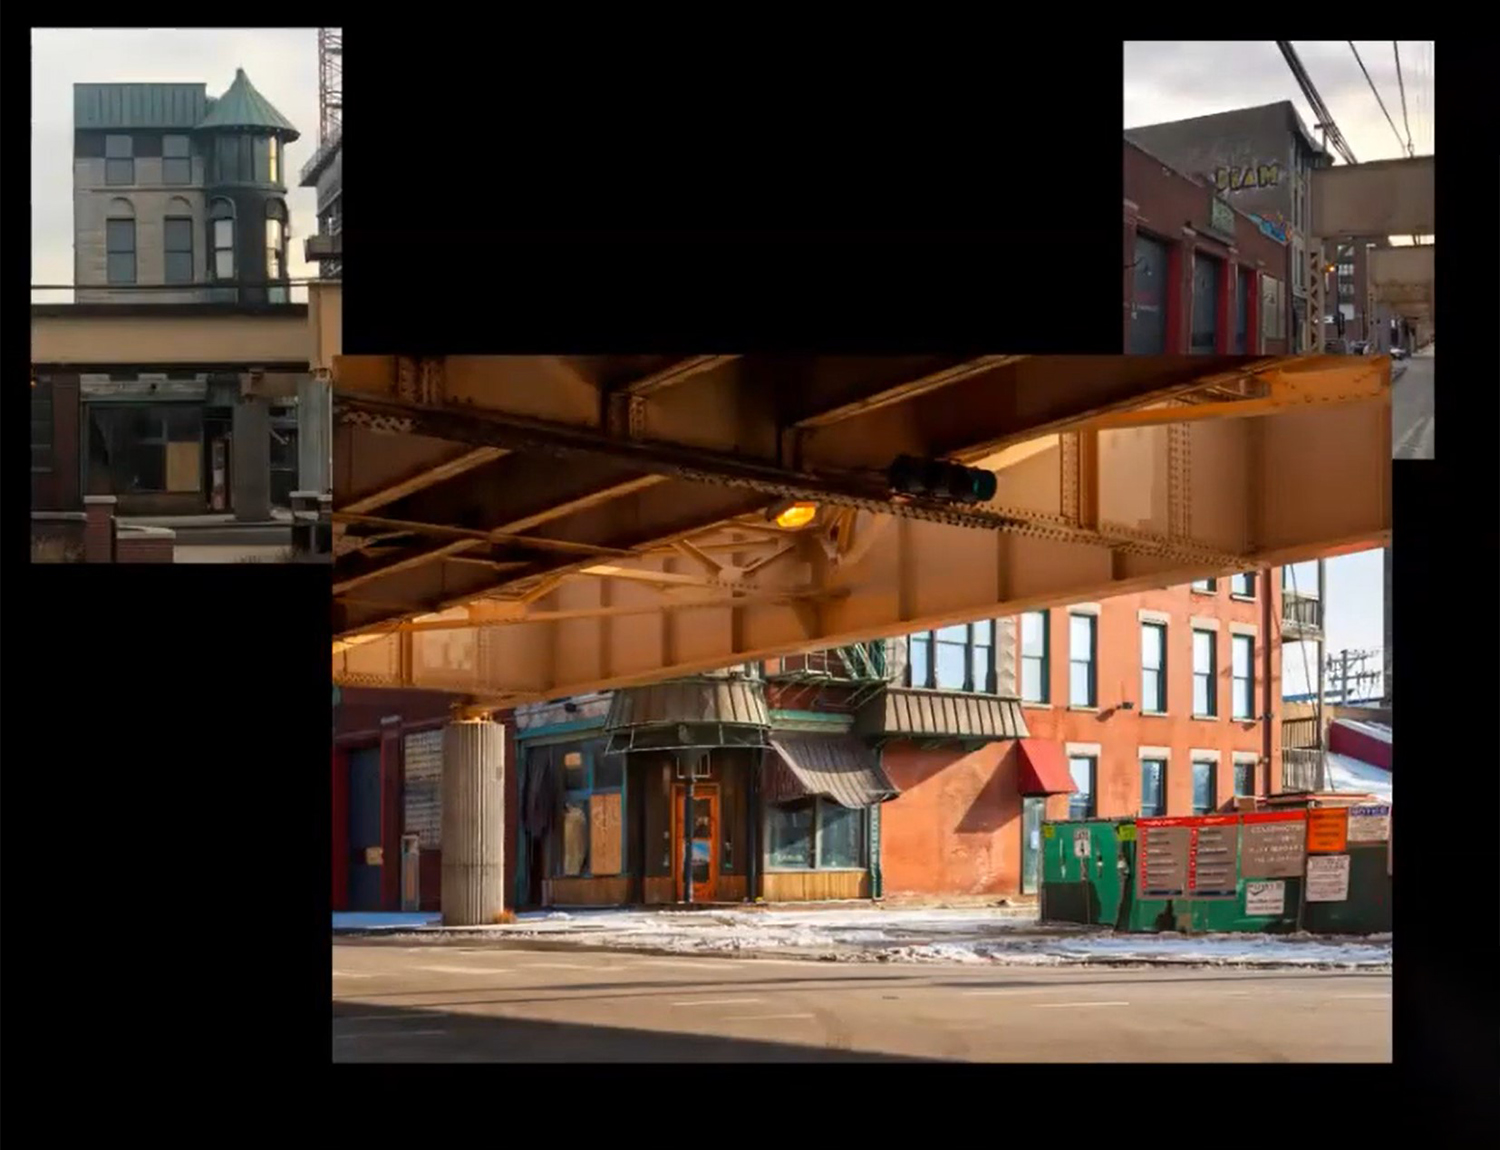 Views of Former Schlitz Brewery-Tied House Bound by CTA L Tracks. Image by CCL